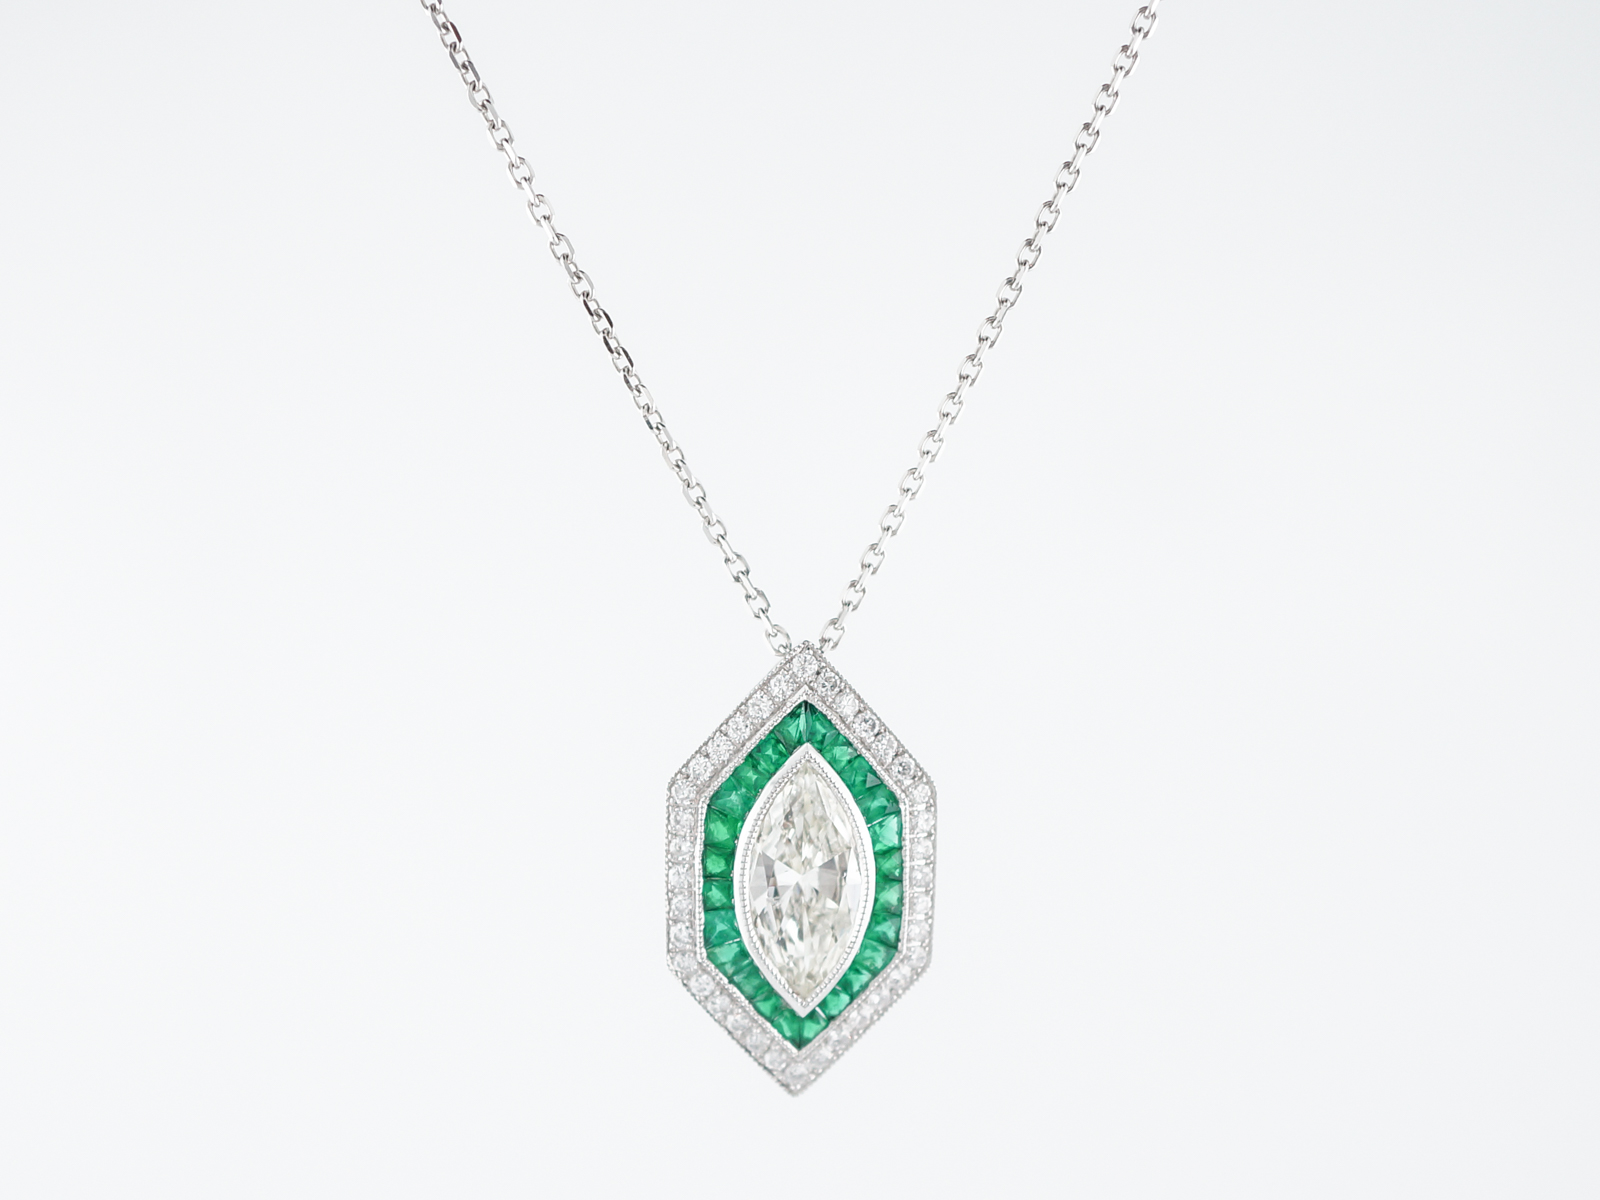 ii pendant wd products kent defnenecklace diamond selin sapphire white marquise necklace yg selinkent defne